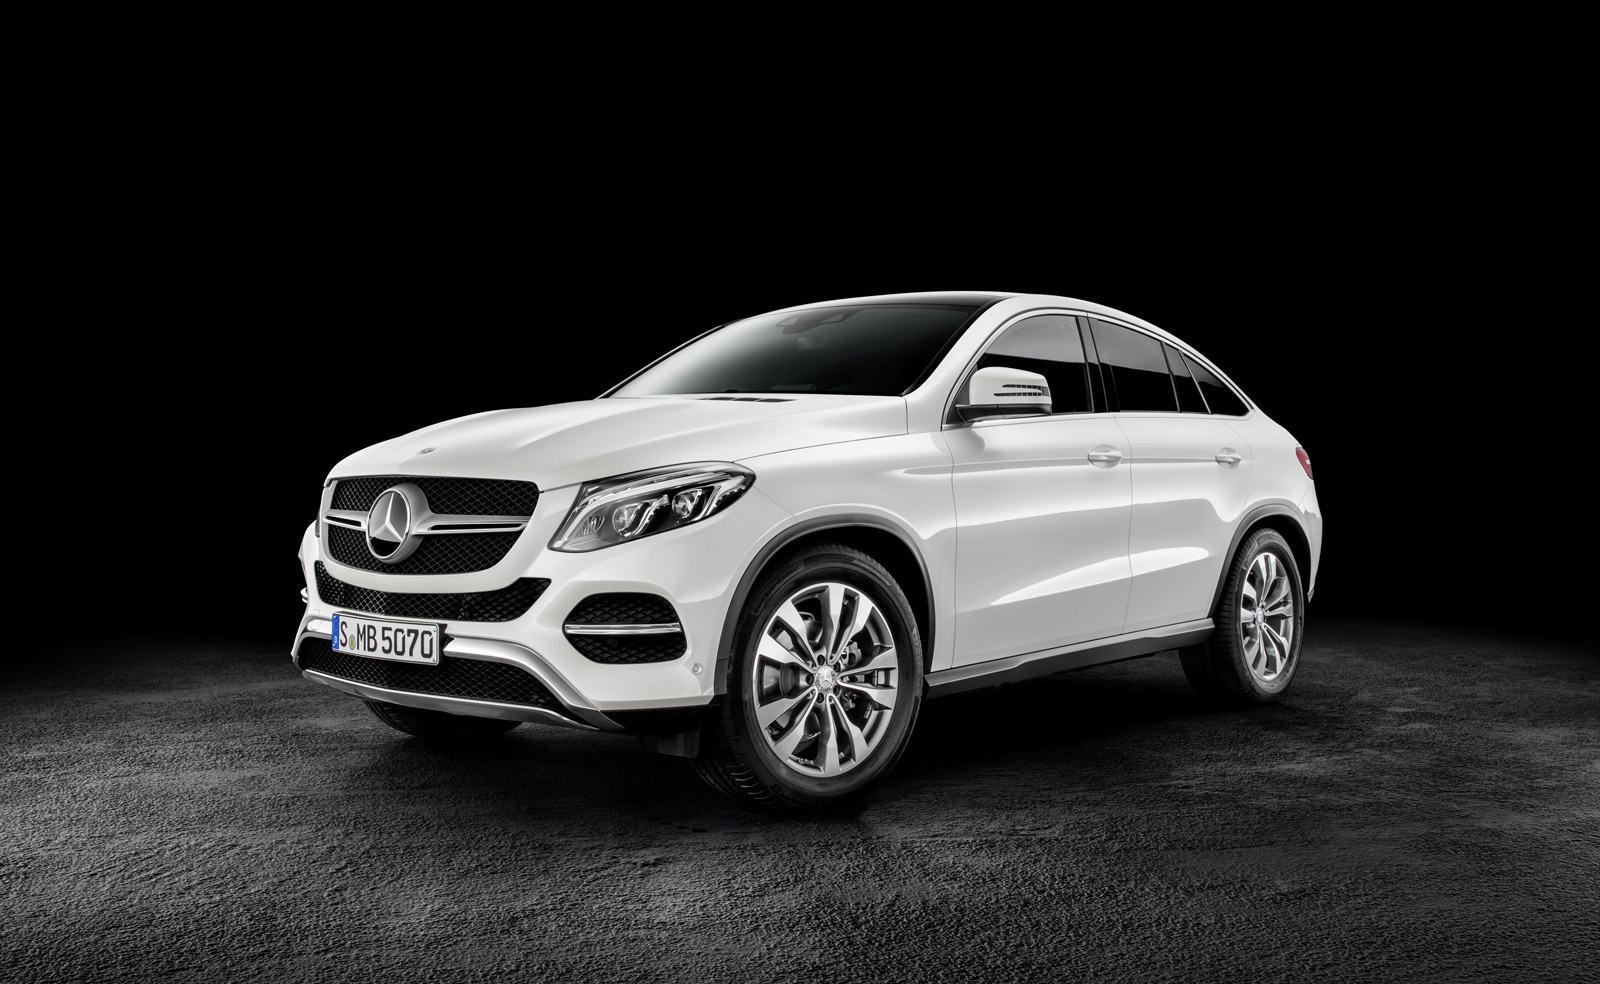 new and used mercedes benz gle class prices photos reviews specs the car connection. Black Bedroom Furniture Sets. Home Design Ideas